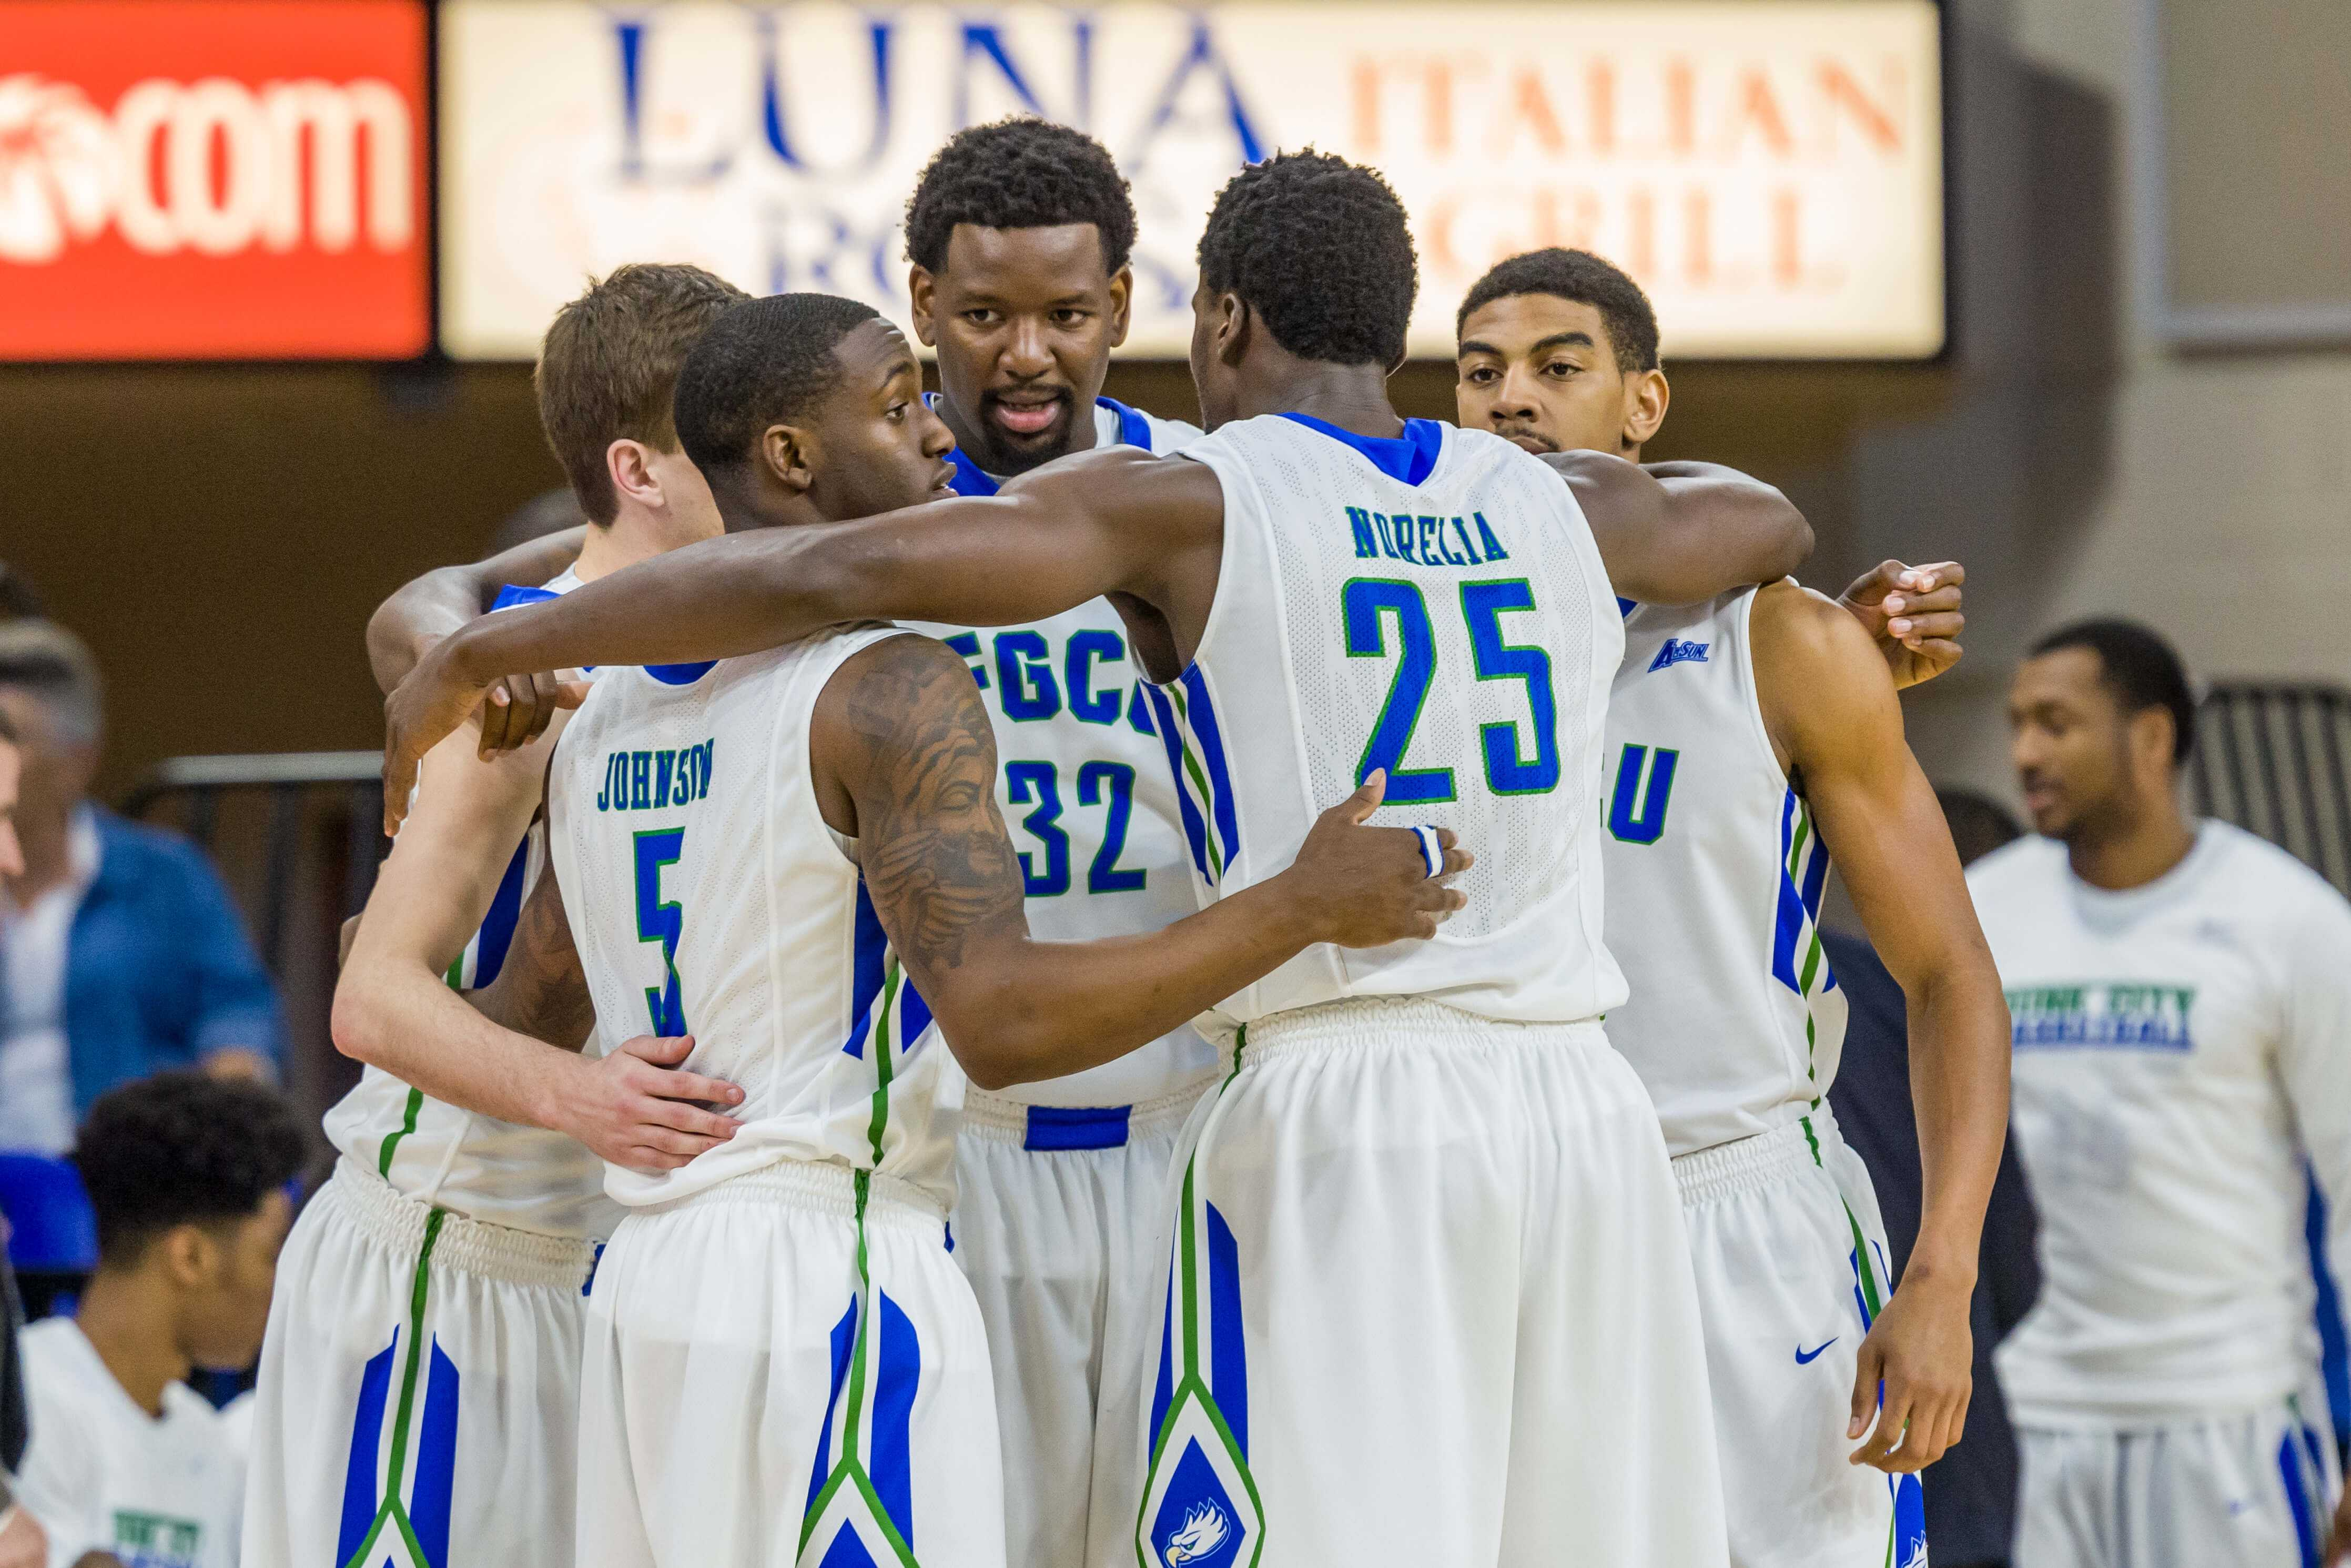 Dunk City heads to NCAA tournament after defeating Stetson